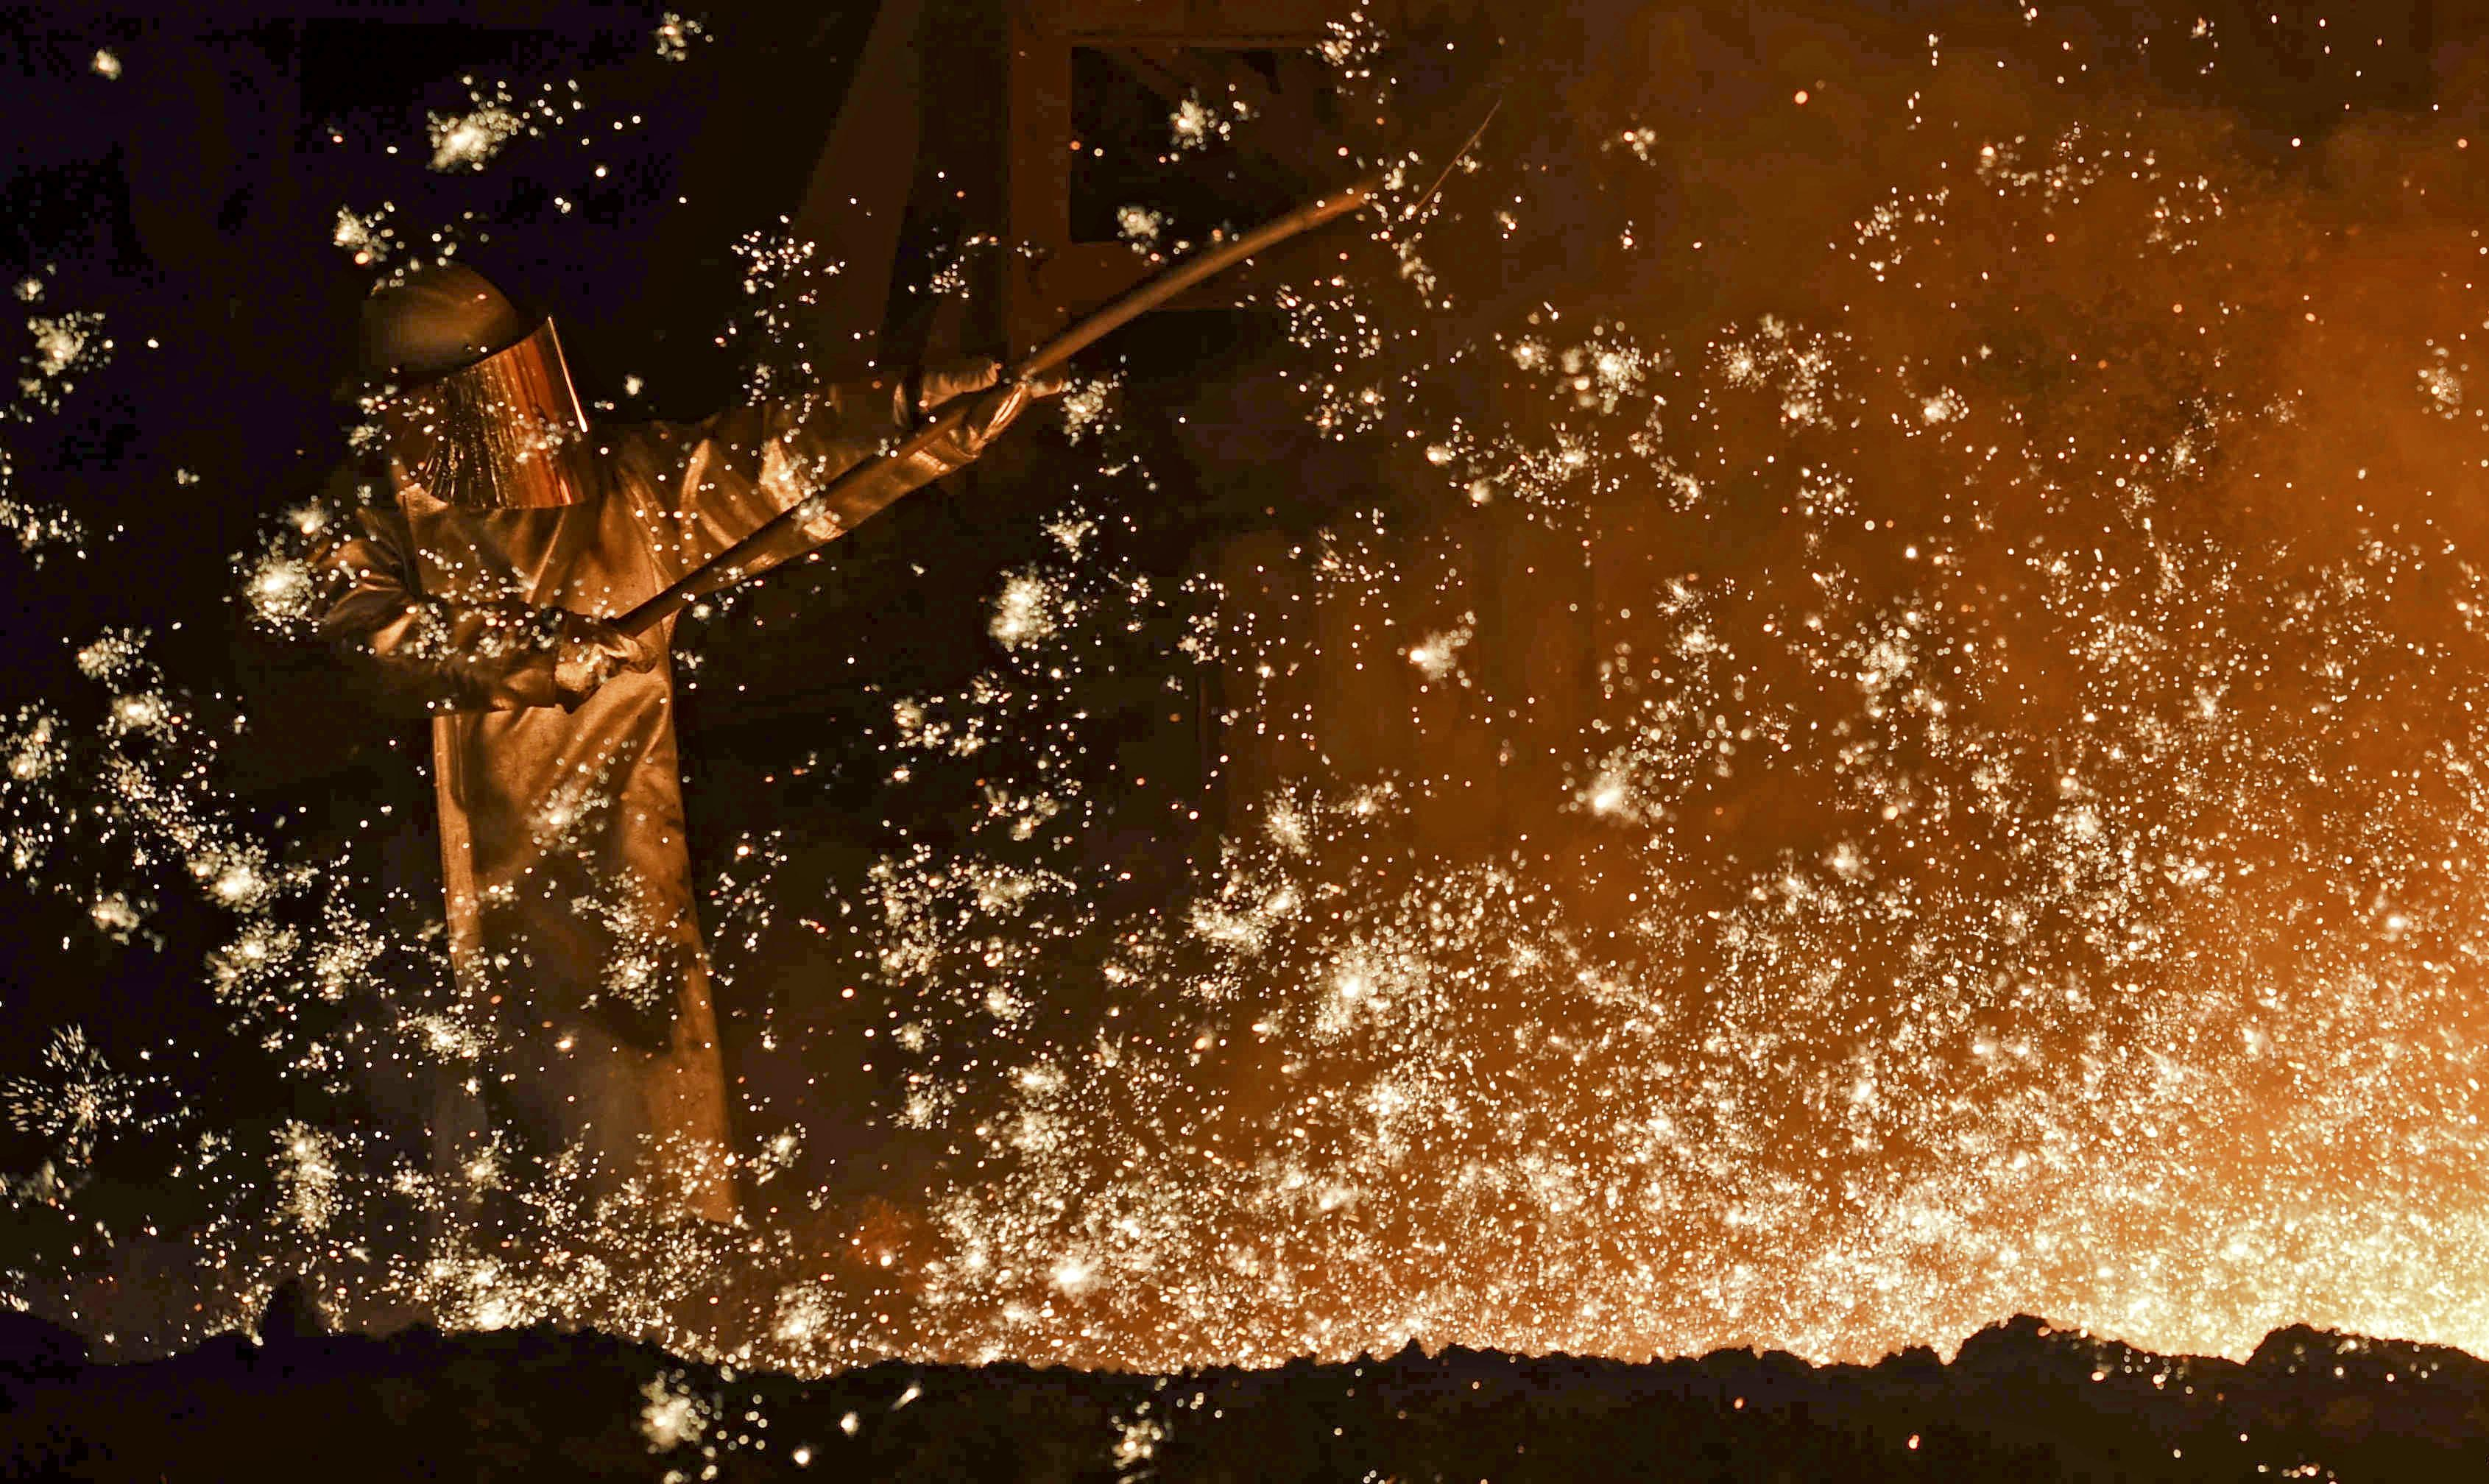 A German steel-worker at a furnace